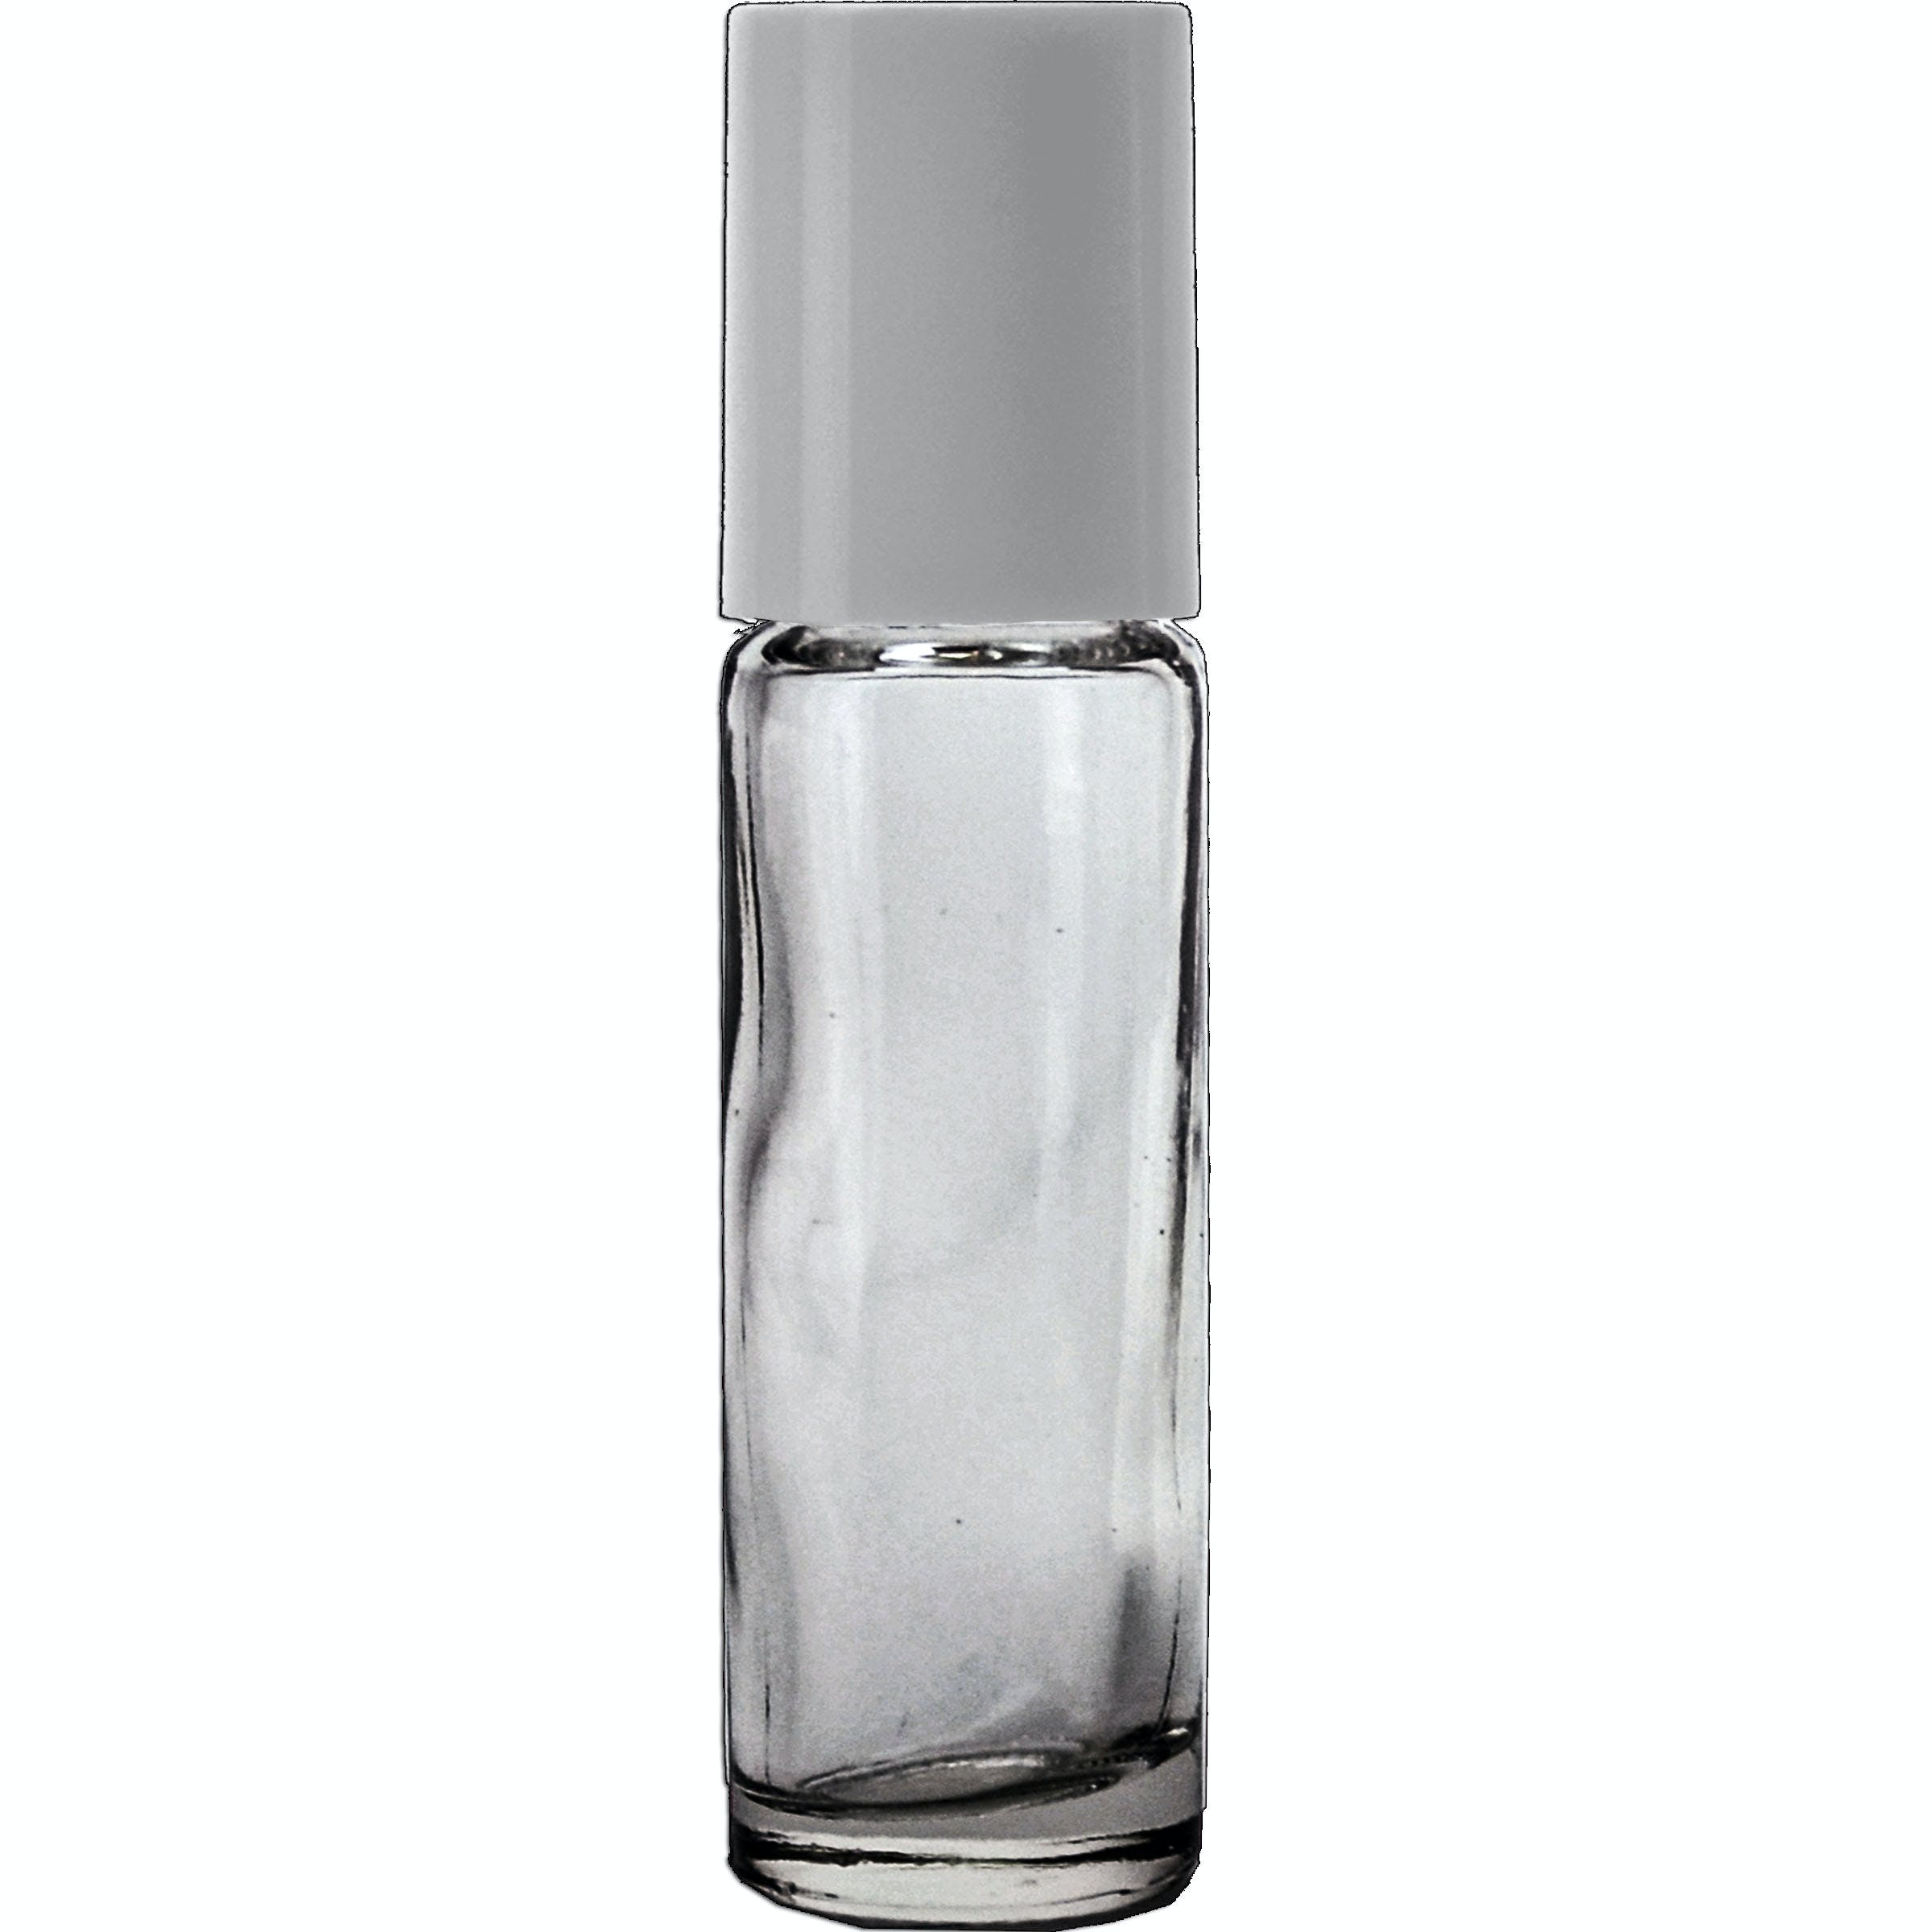 10ml Roll-on with White cap Glass bottle sold by Glass Bottle Outlet